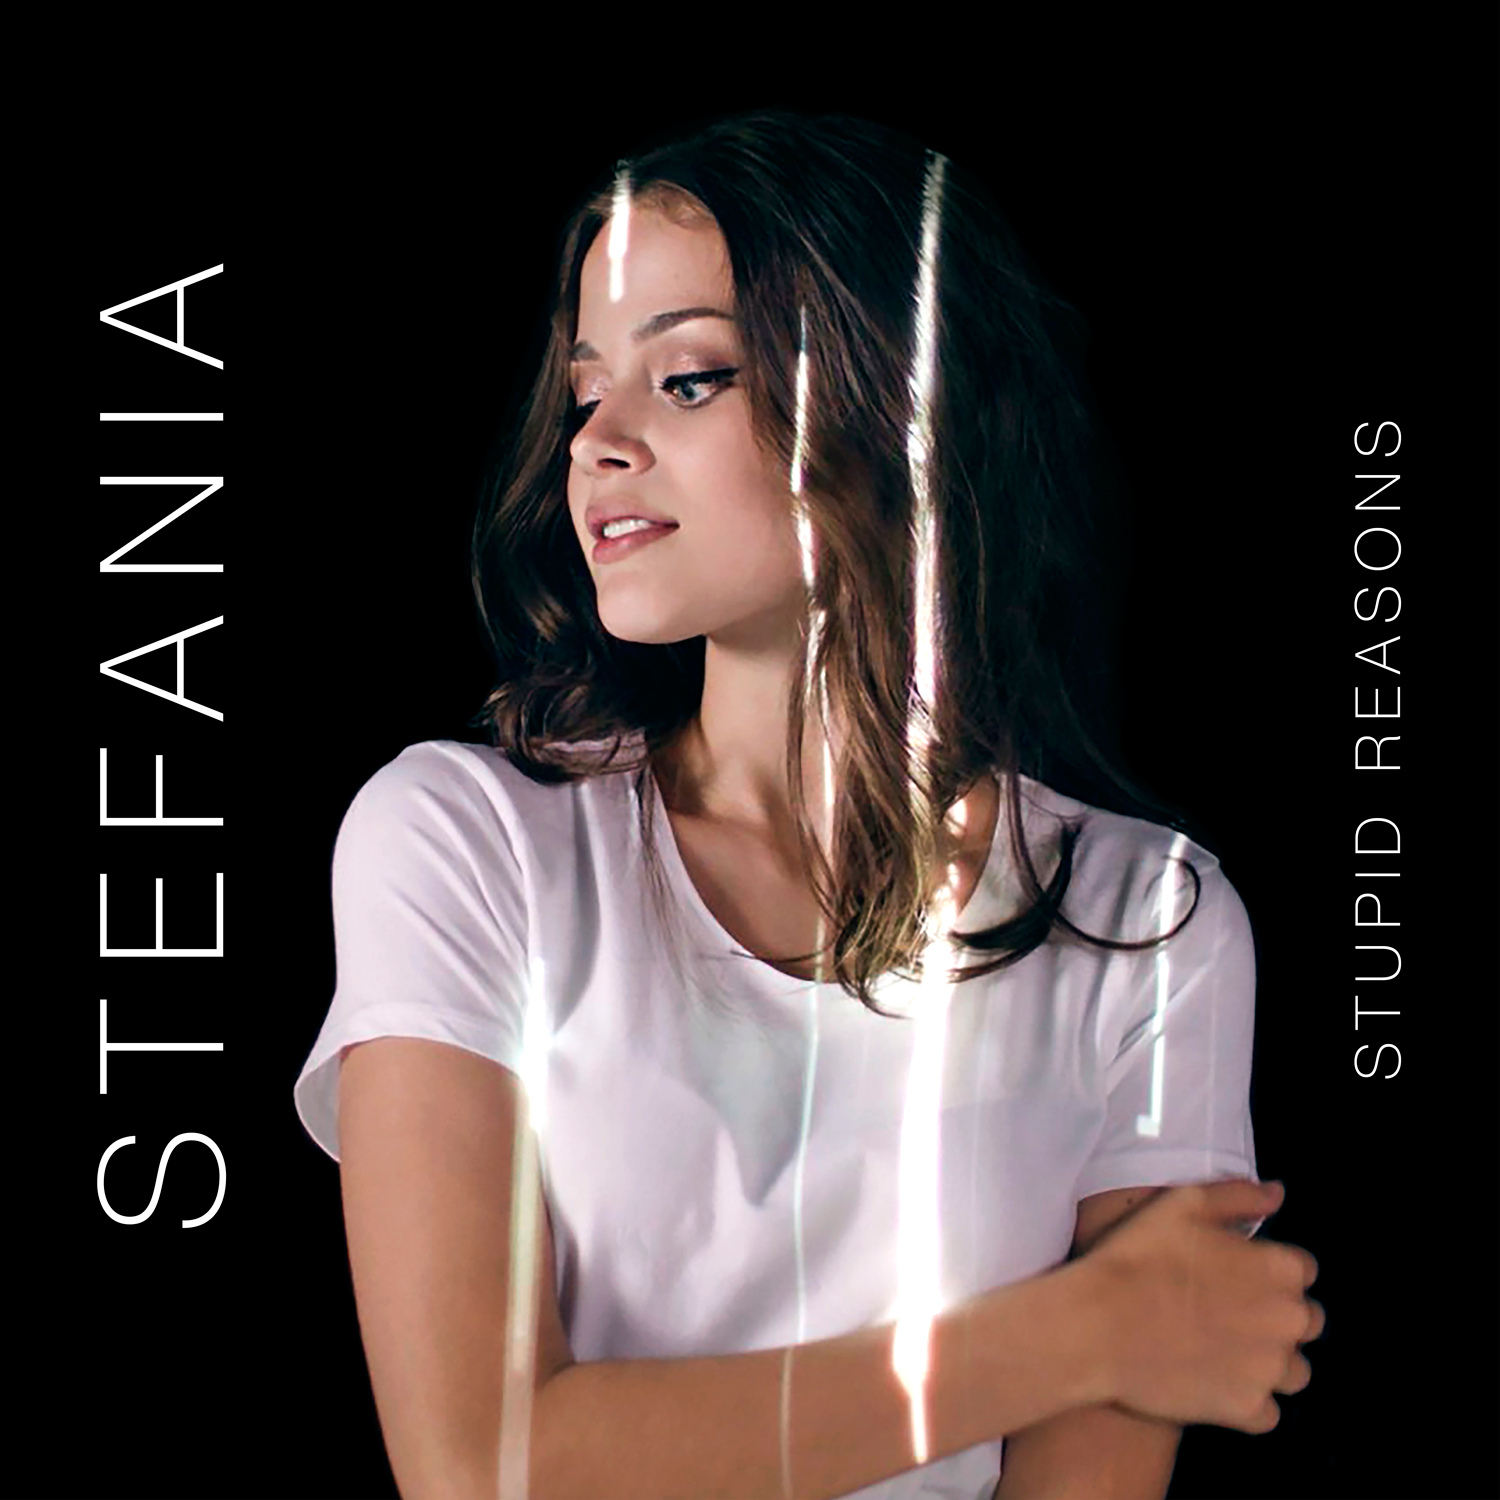 Stefania – Stupid Reasons